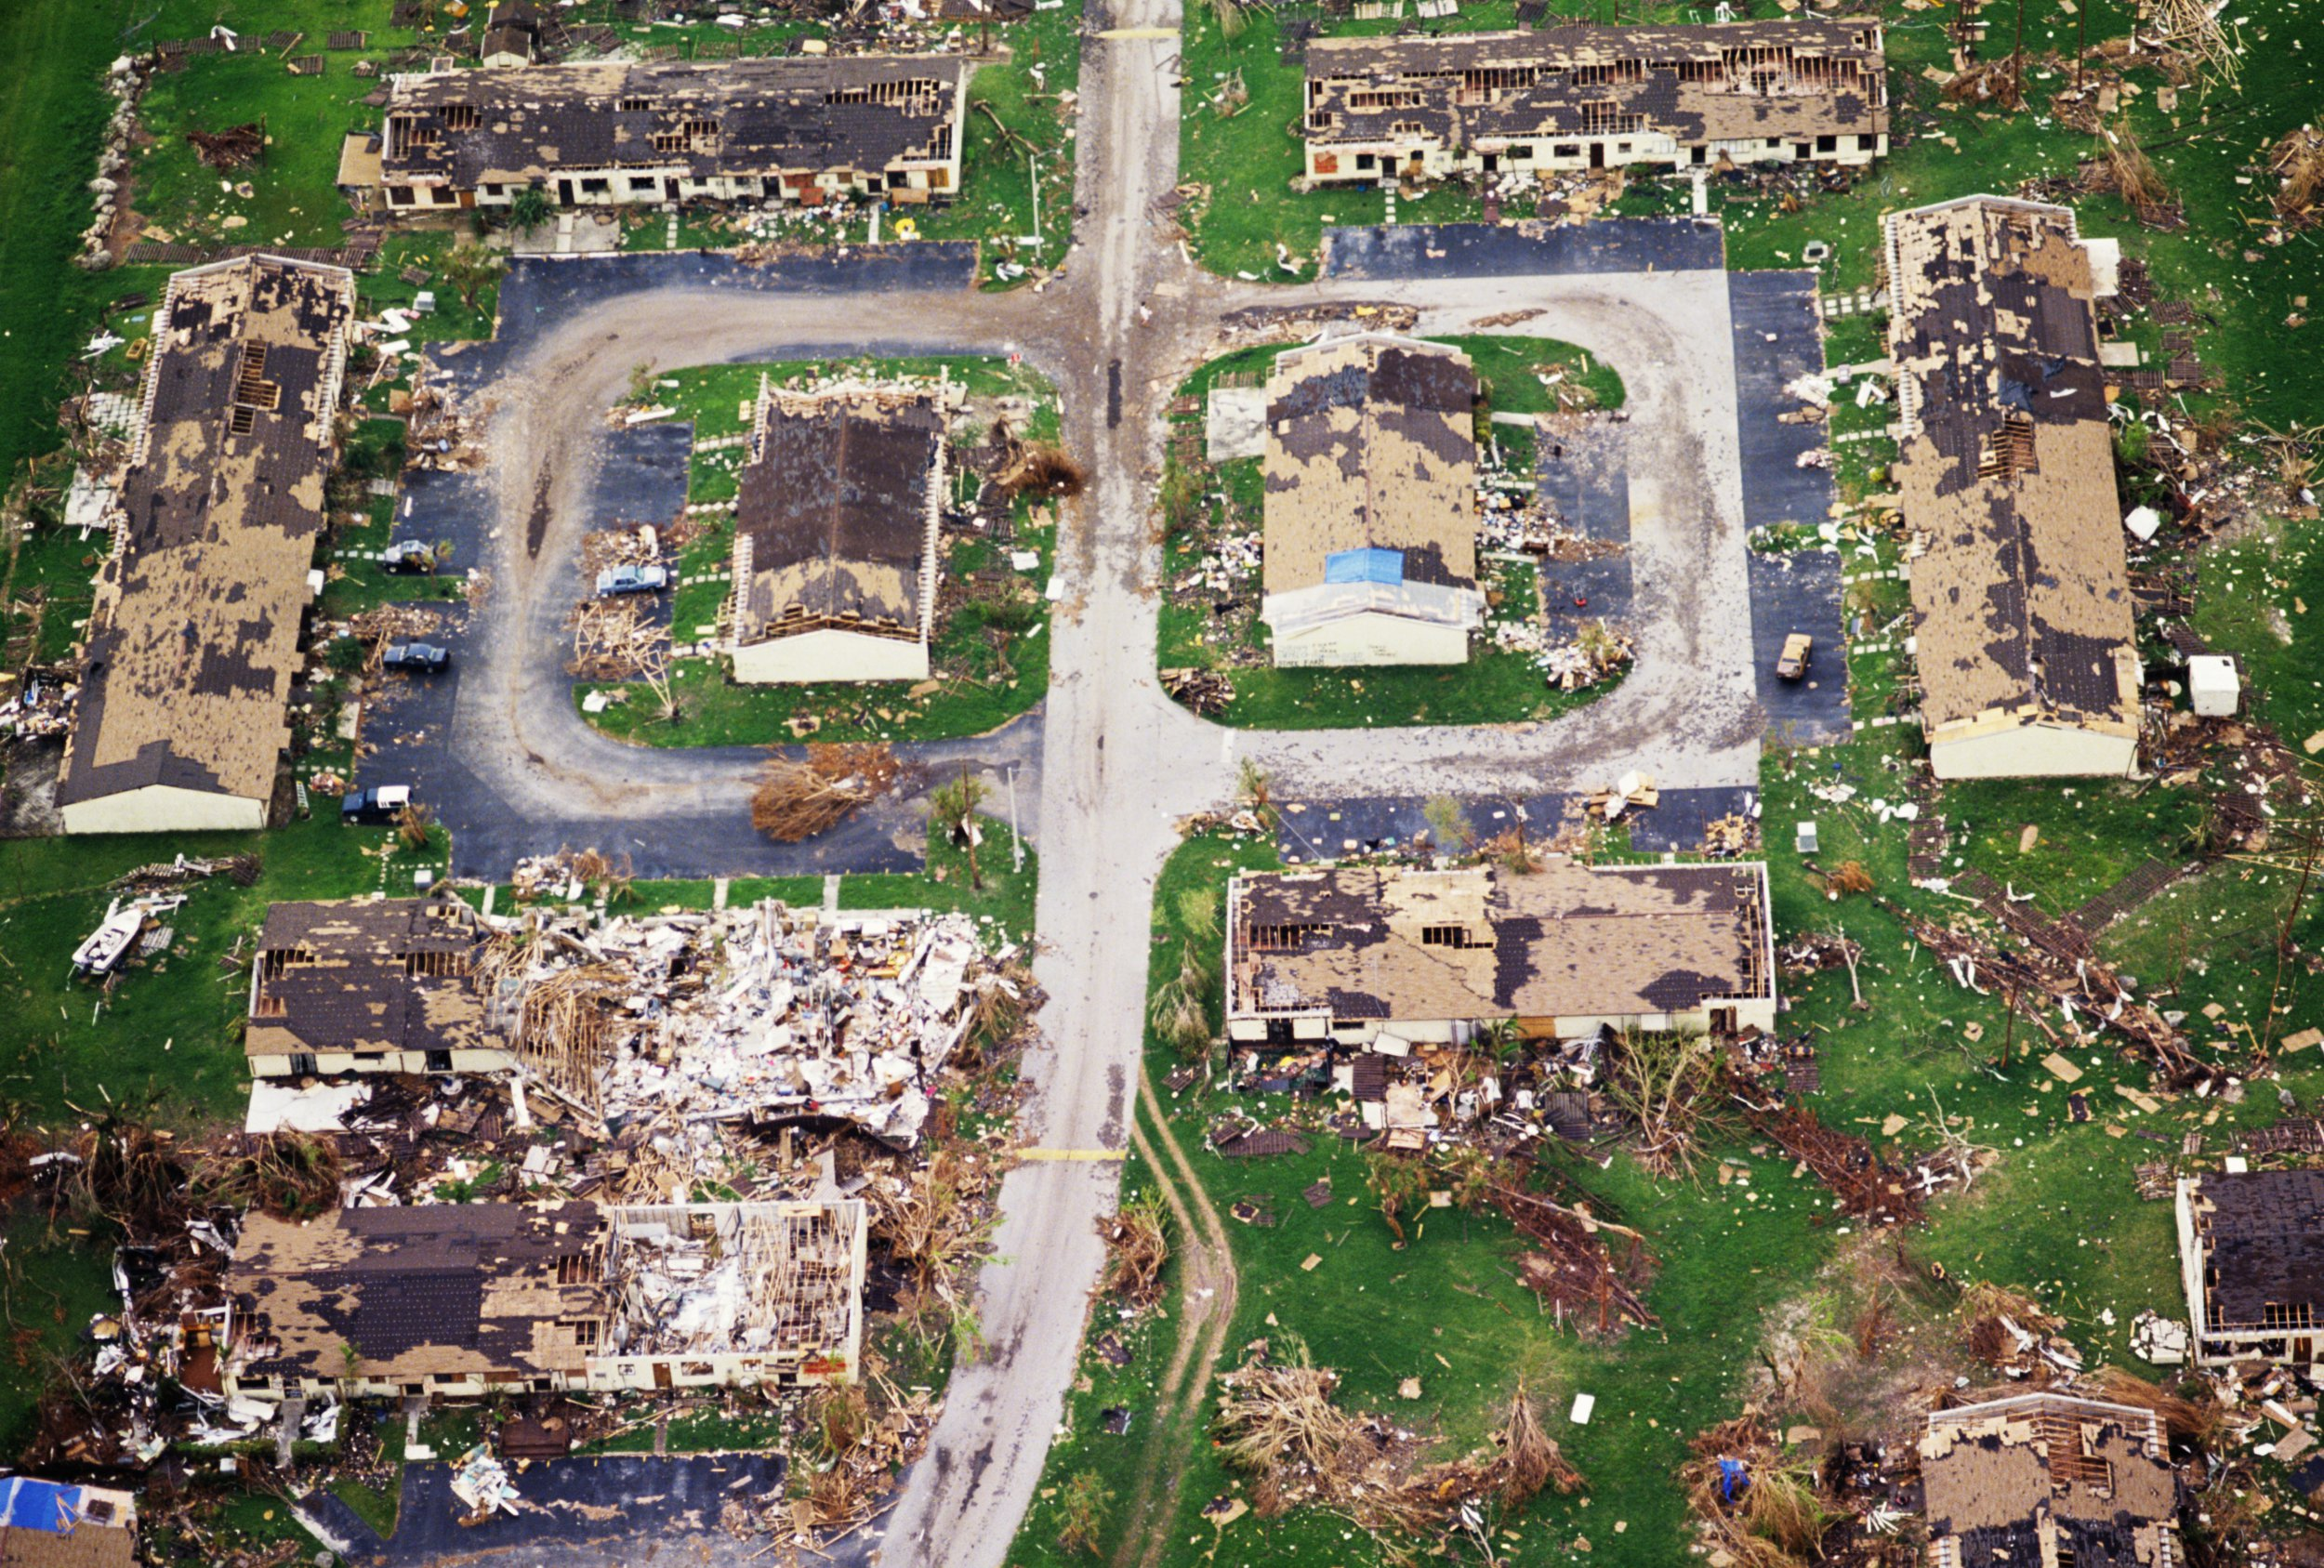 This is what happened last time a category 5 hurricane hit Florida